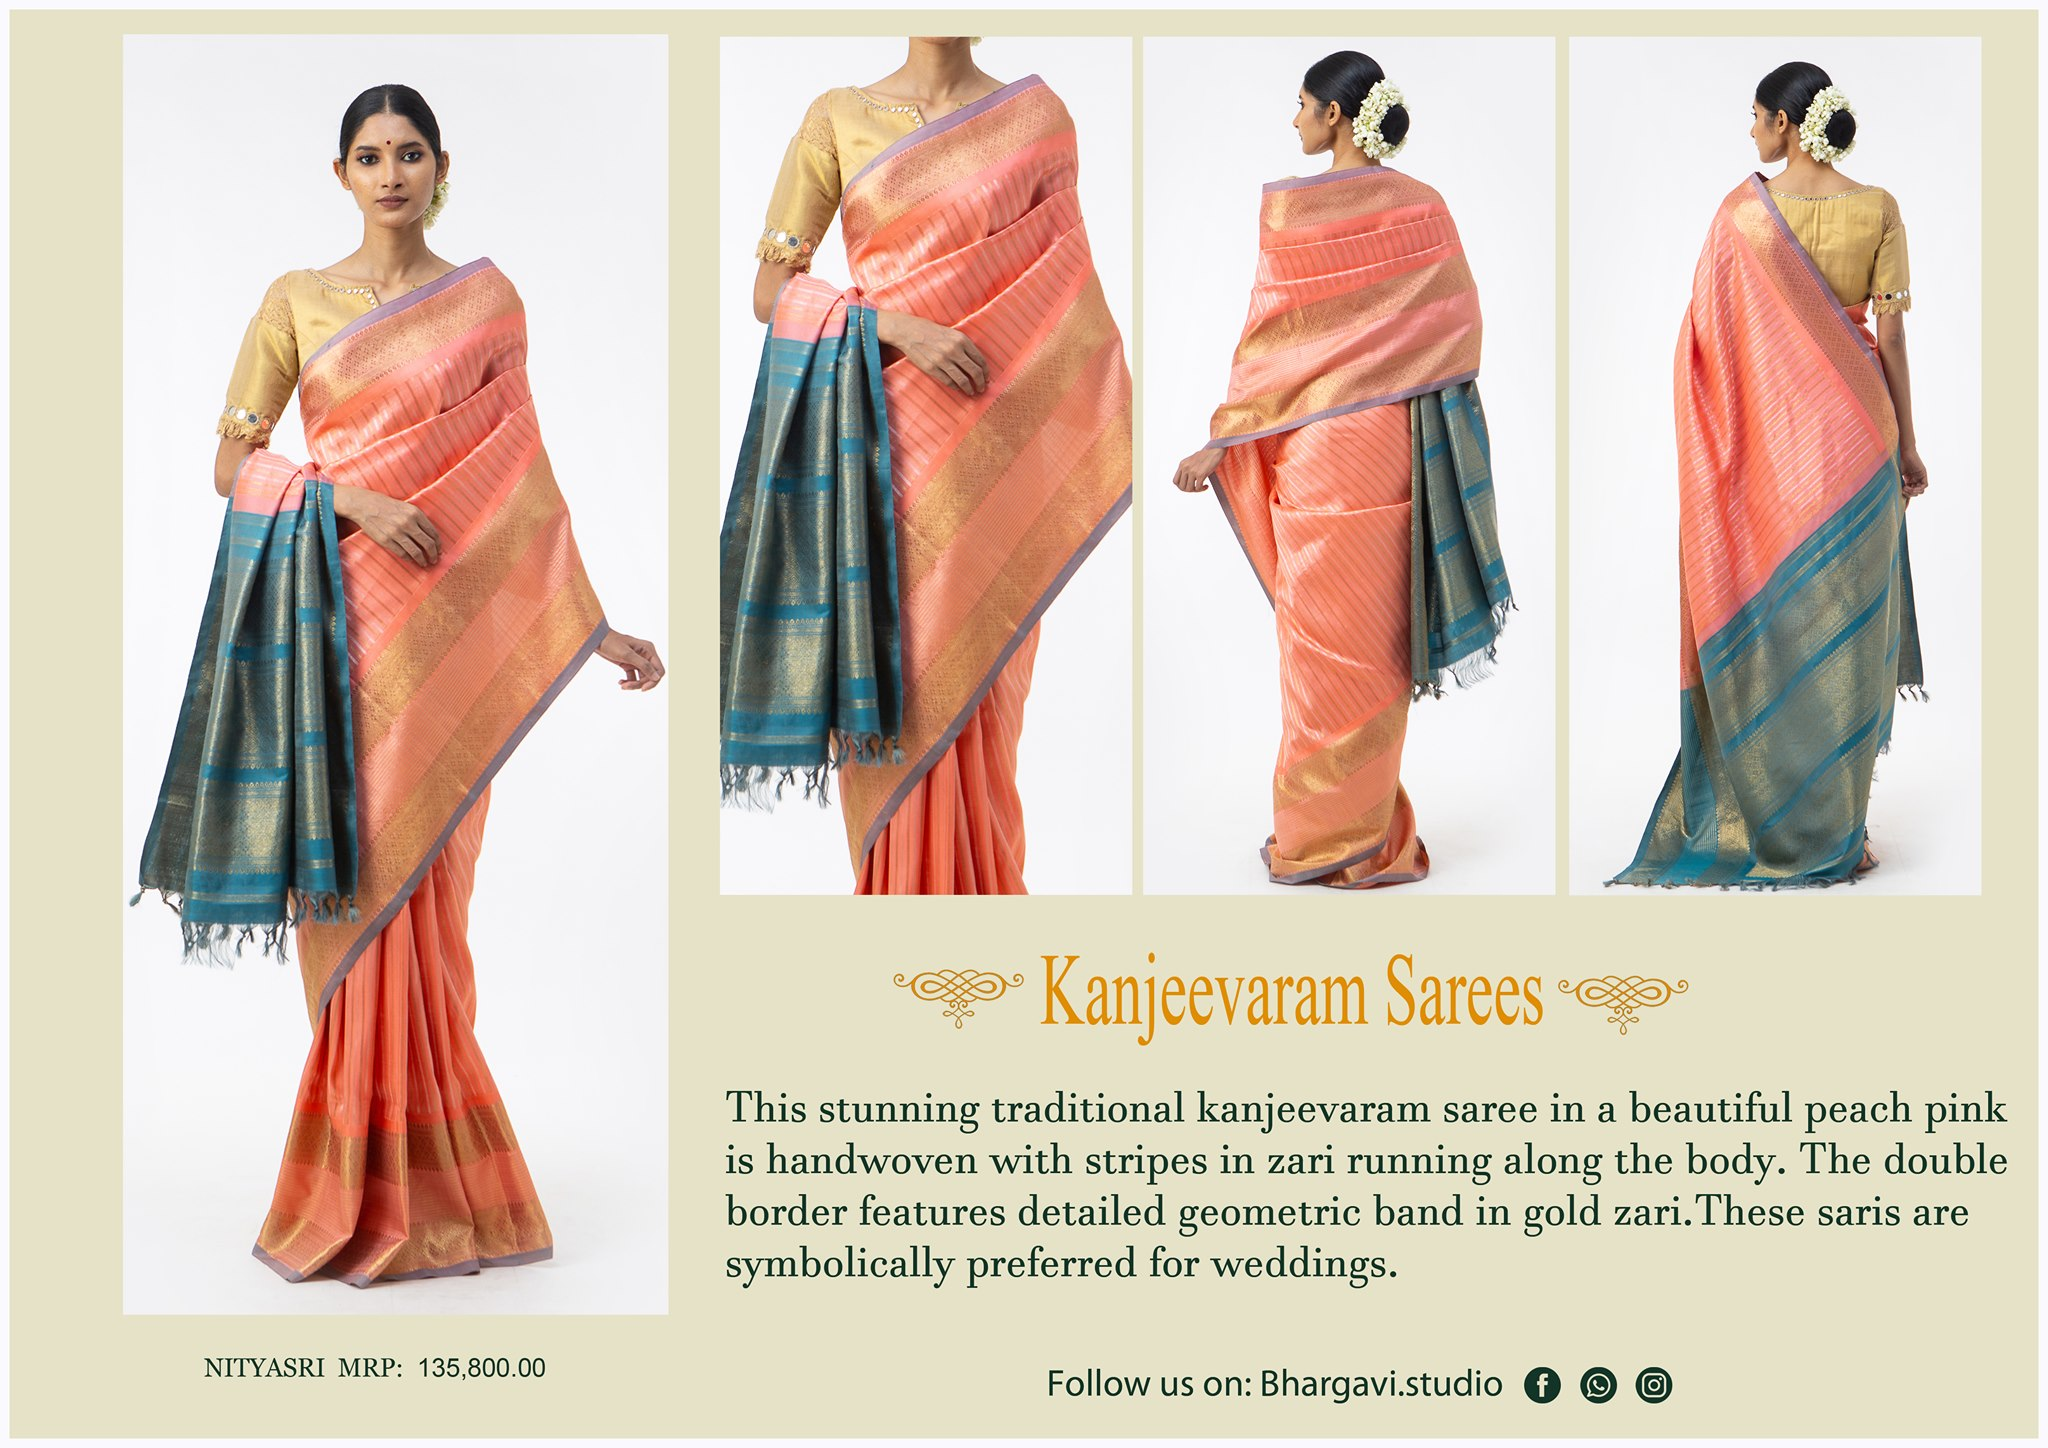 Stunning traditional kanjeevaram saree in a beautiful peach pink is handwoven with stripes in zari running along the body. The double border features detailed geometric band in gold zzari.  2021-05-08